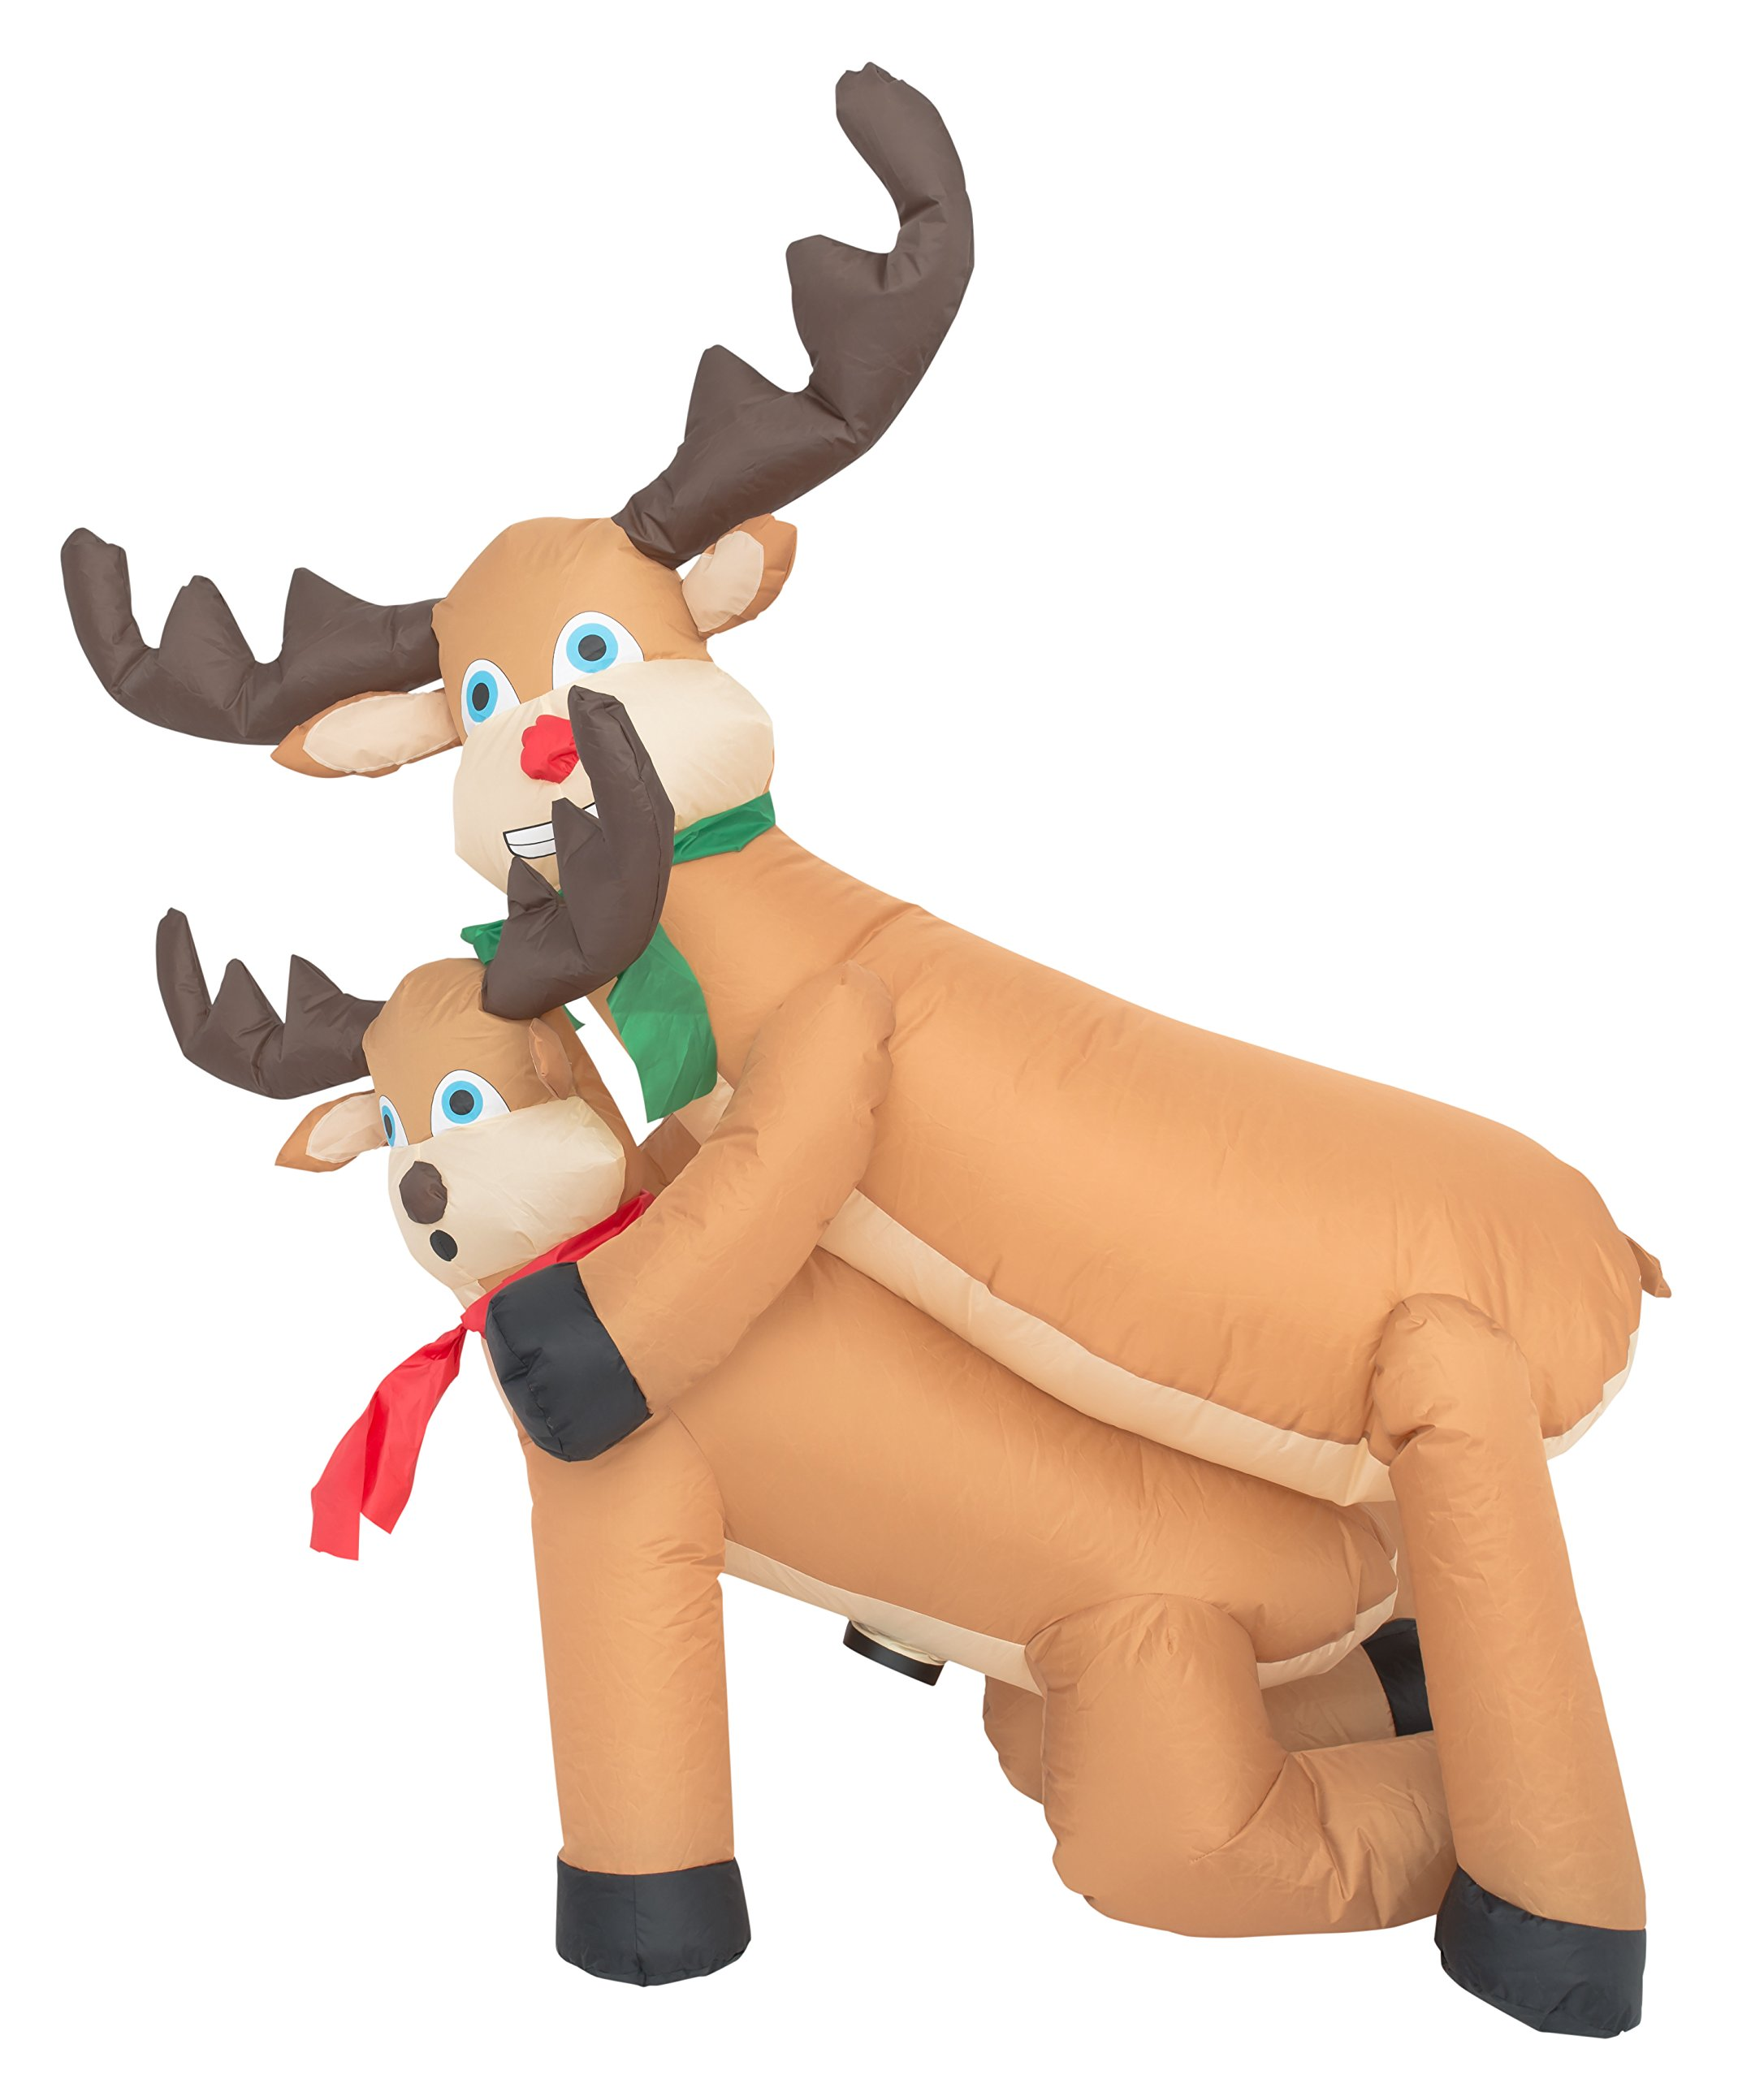 Costume Agent Inflatable Airblown Indoor and Outdoor Christmas Decoration (4 feet, Humping Reindeer)